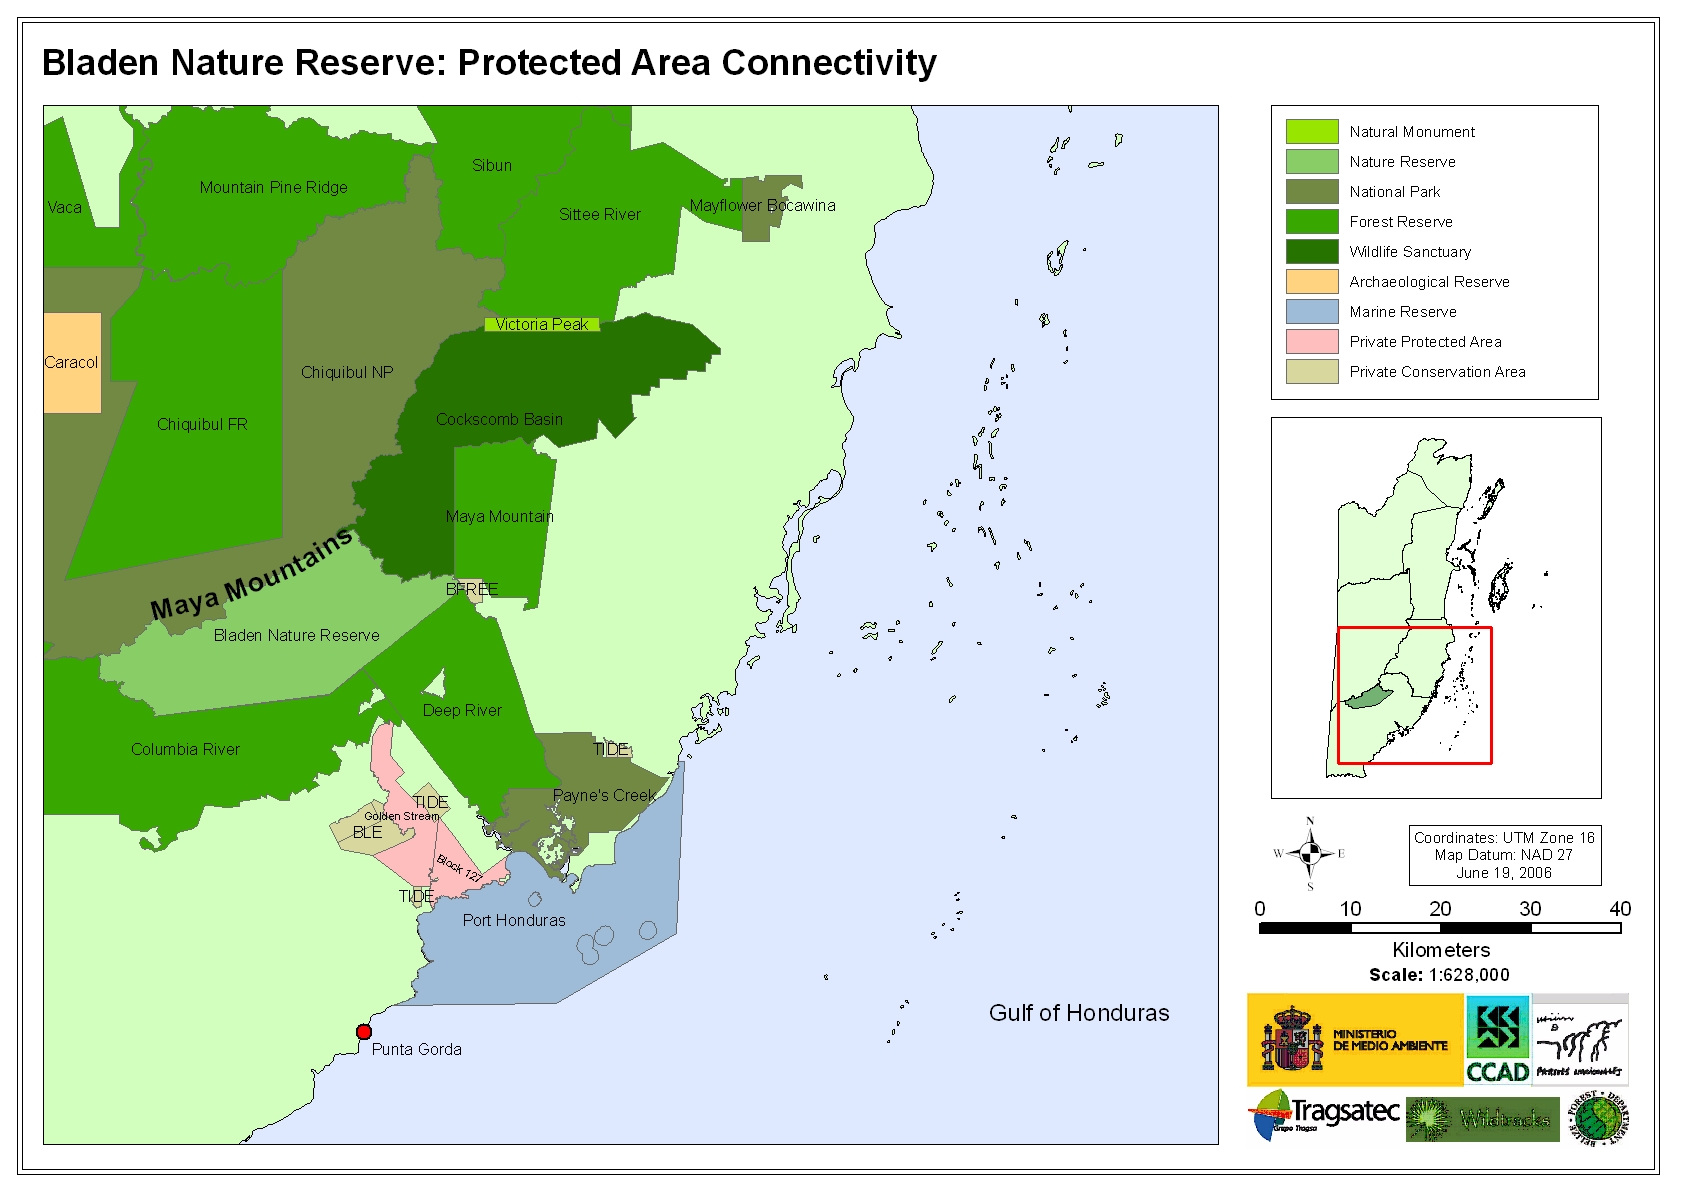 Bladen Nature Reserve: Protected Area Connectivity